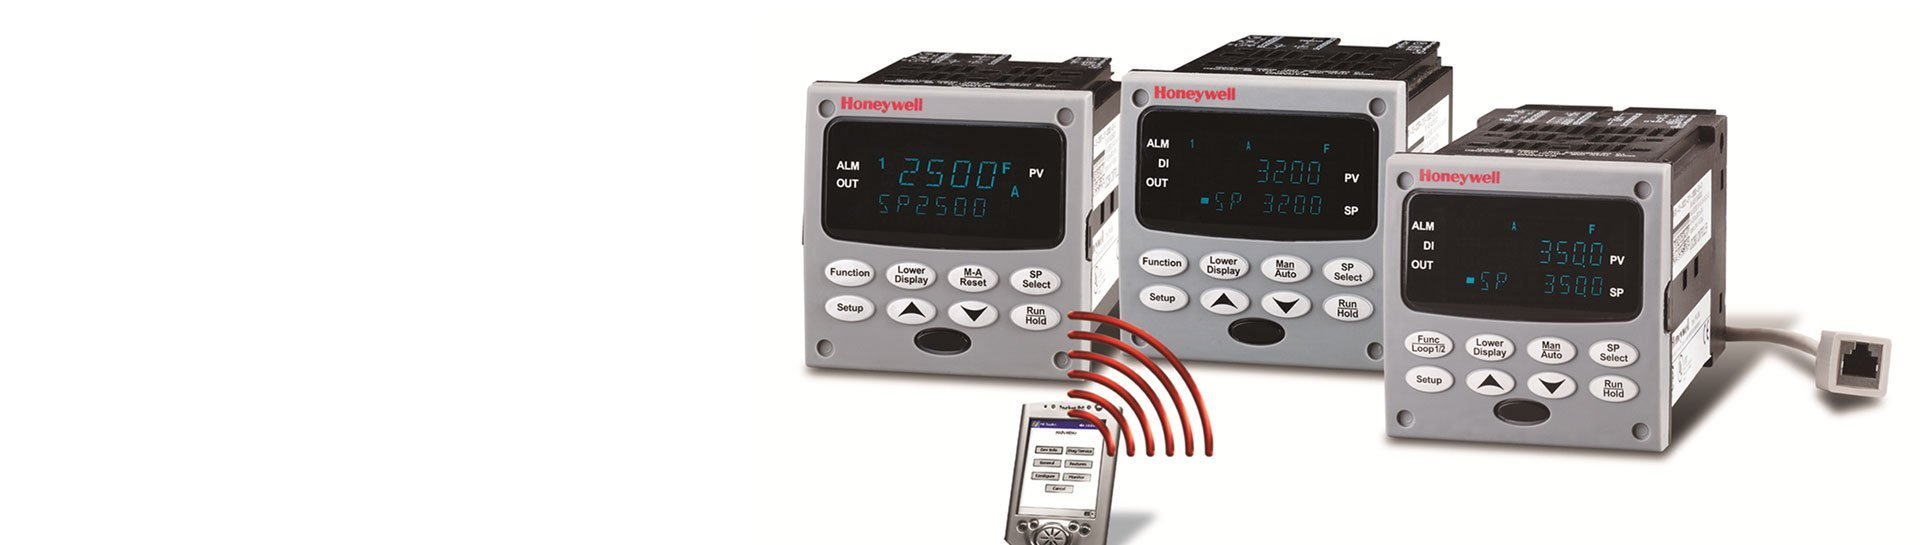 Honeywell Process Controllers